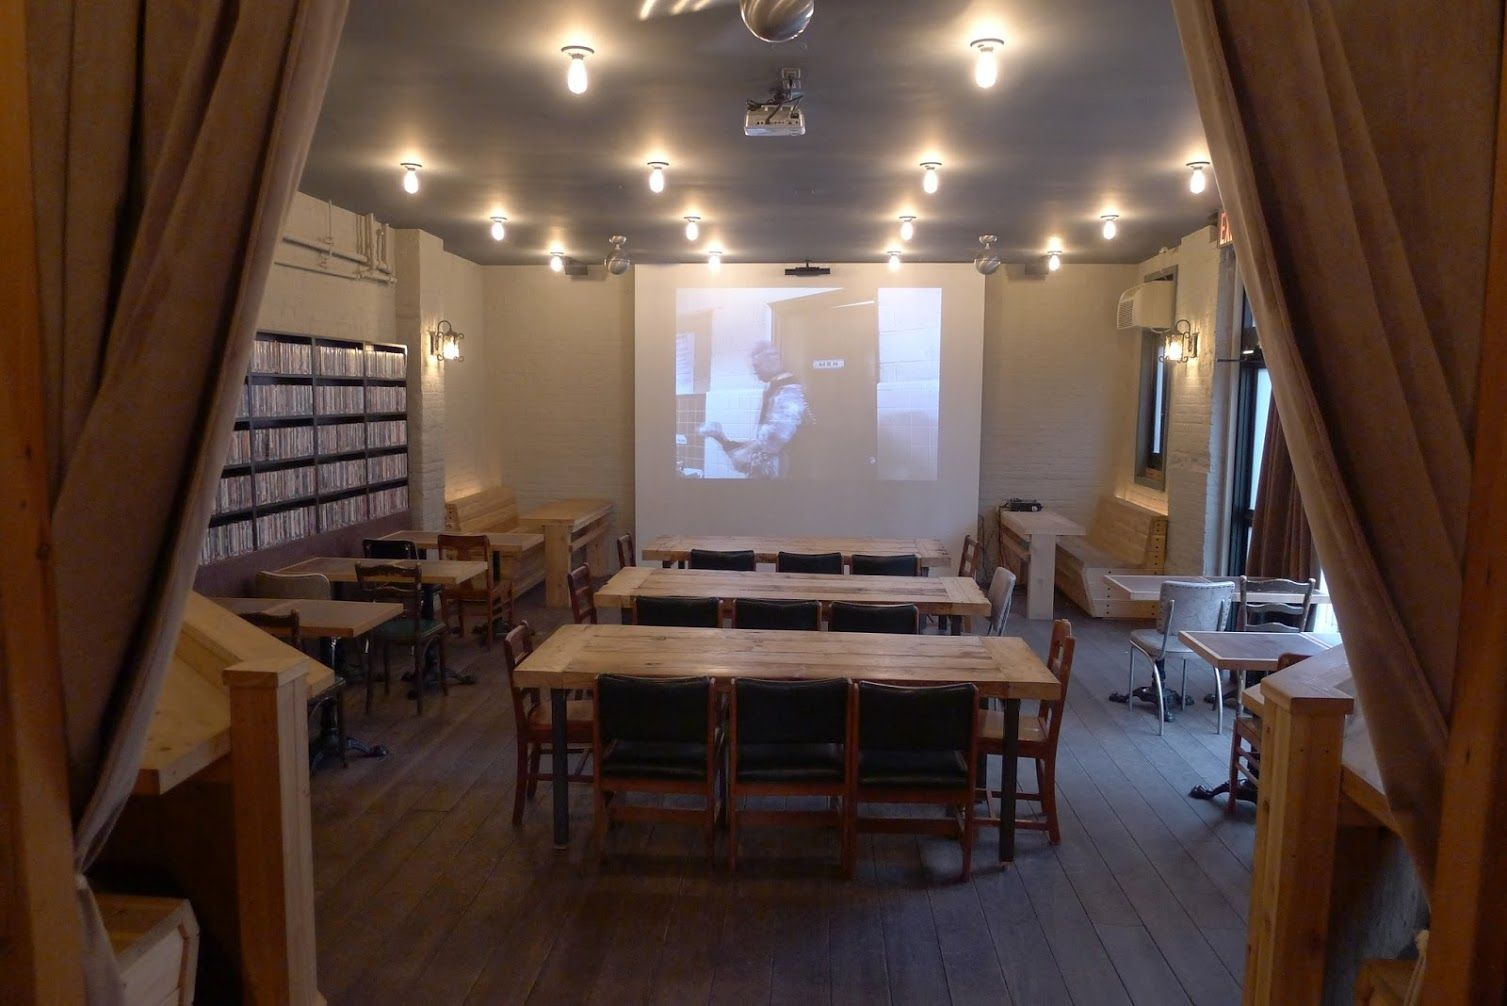 Videology is an independent microcinema located in